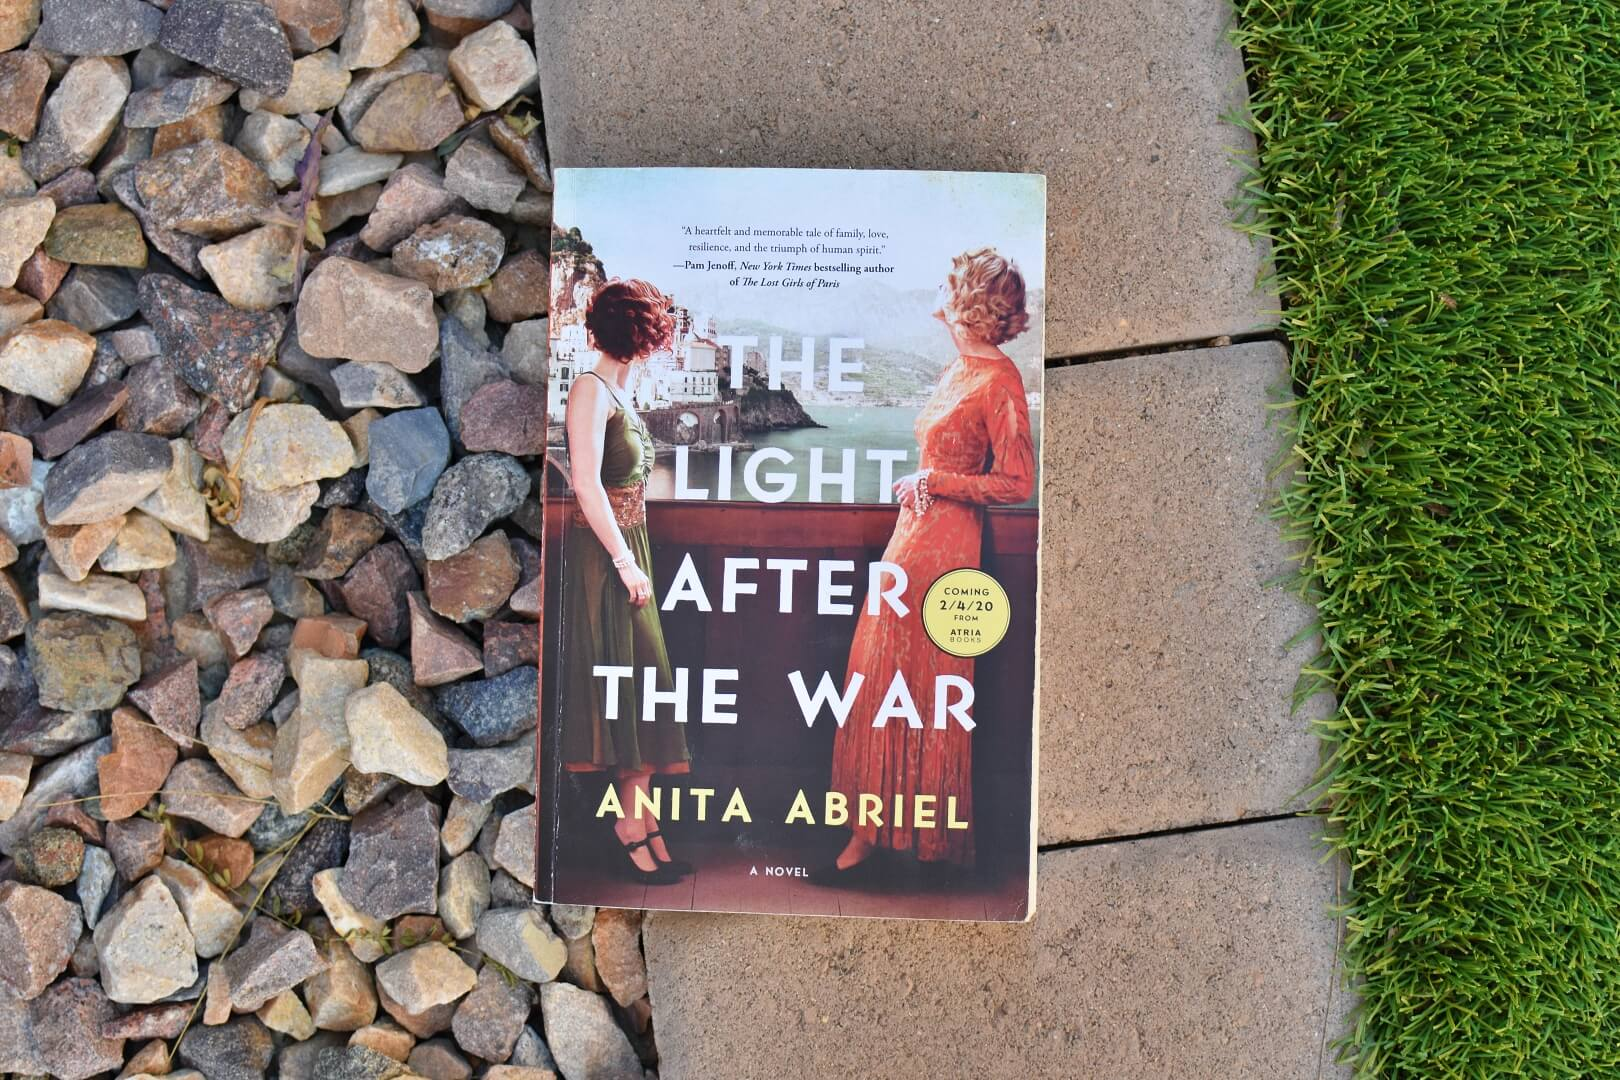 the light after the war book club questions - book club chat